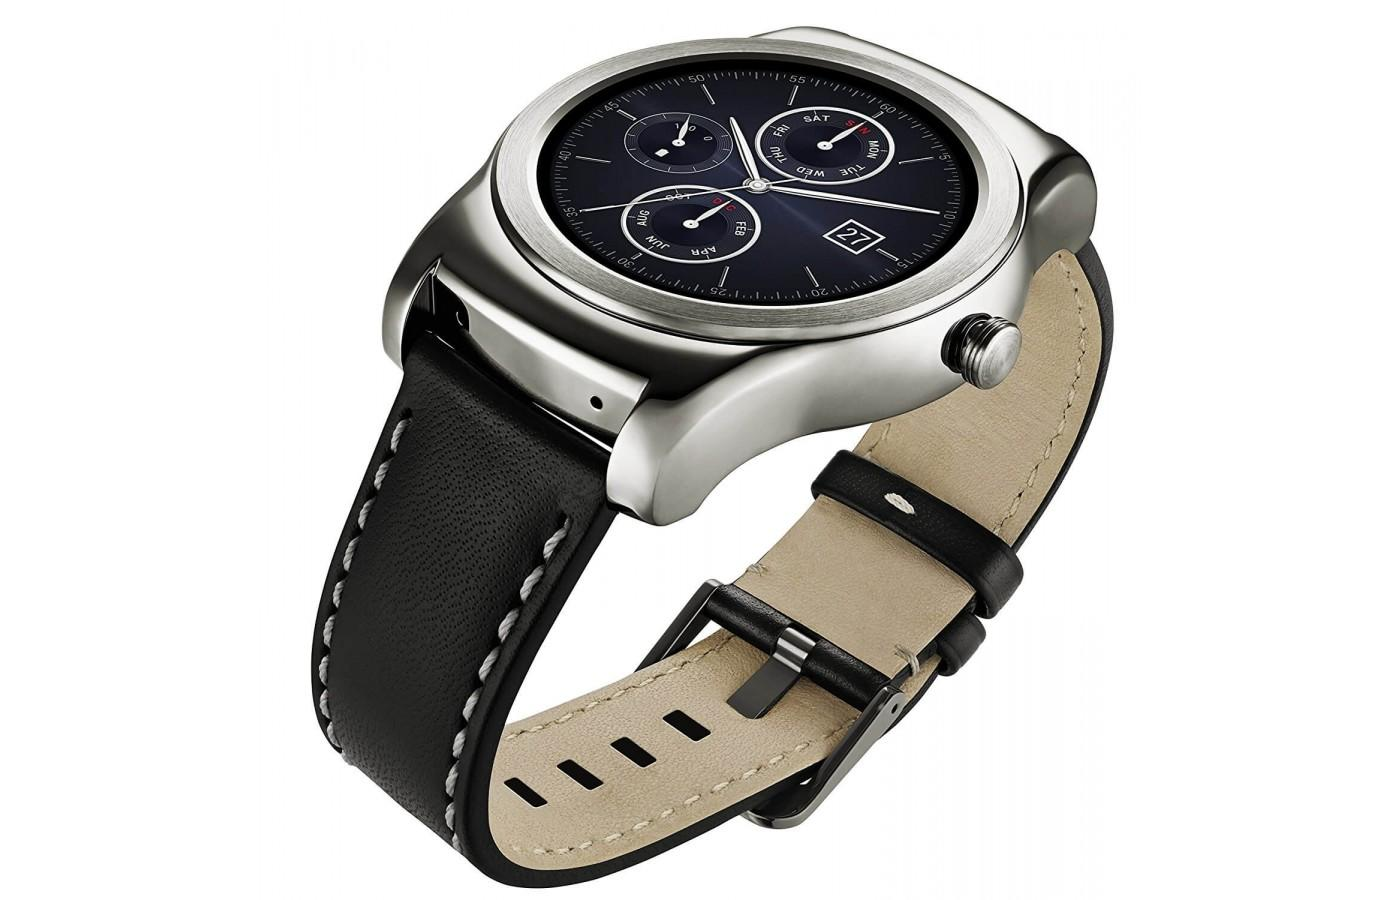 LG Watch Urbane is worn comfortably around the wrist